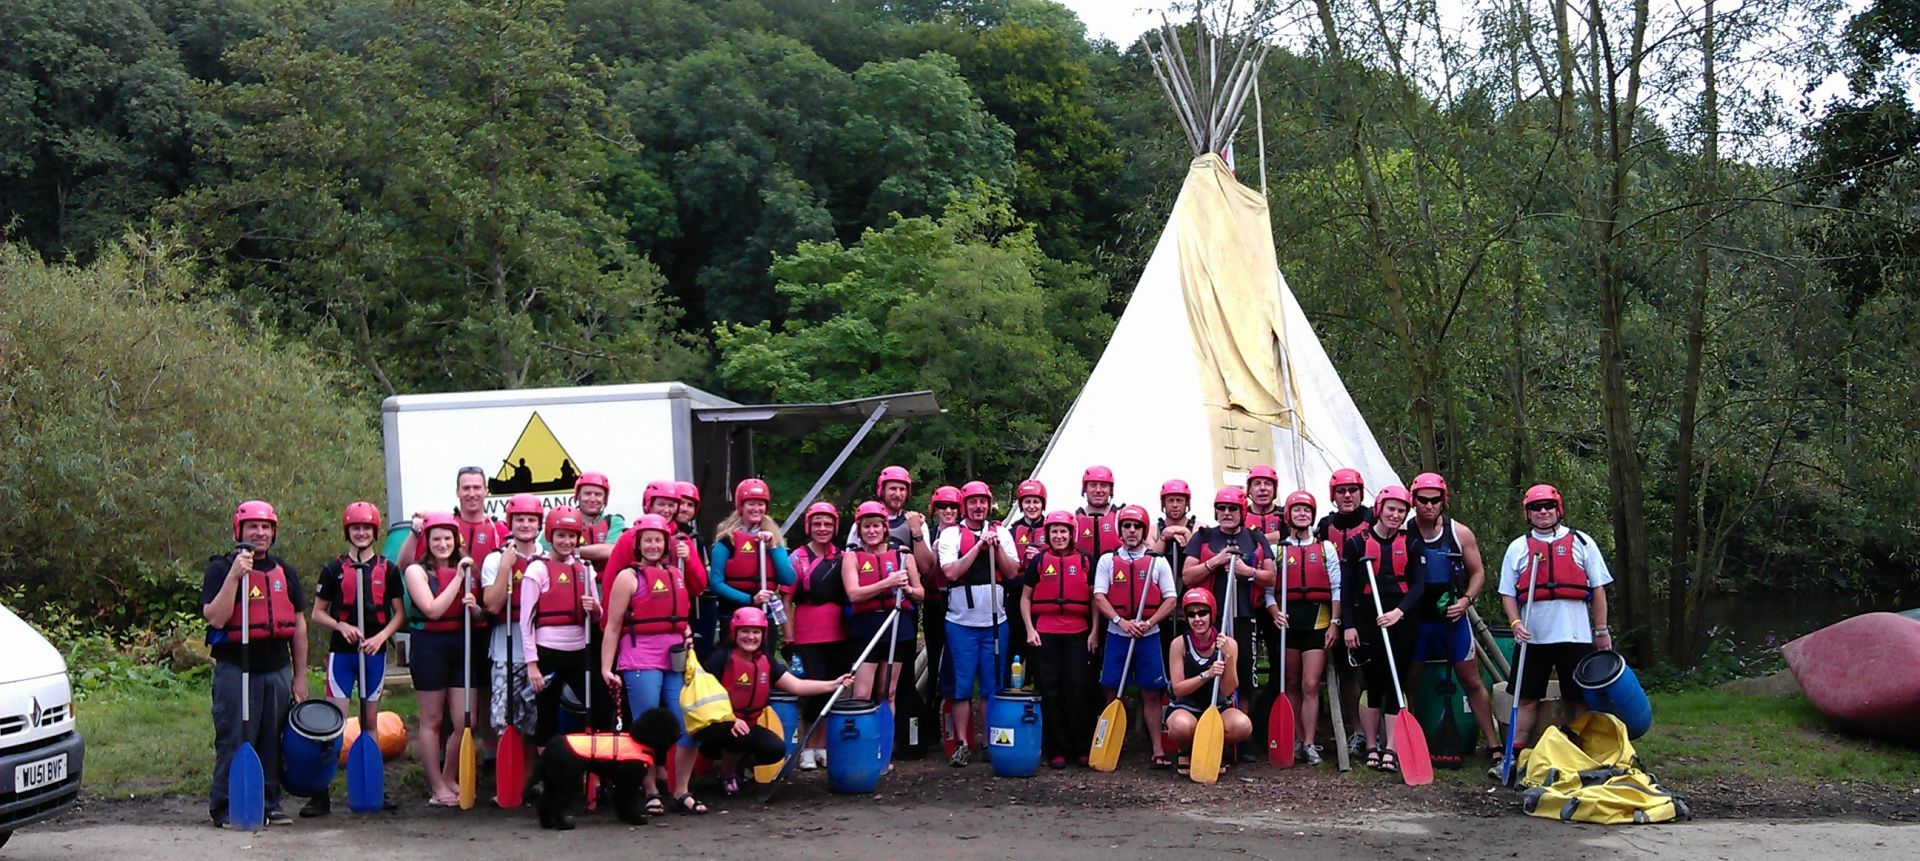 Worcester Dragon Boat Racing Team.